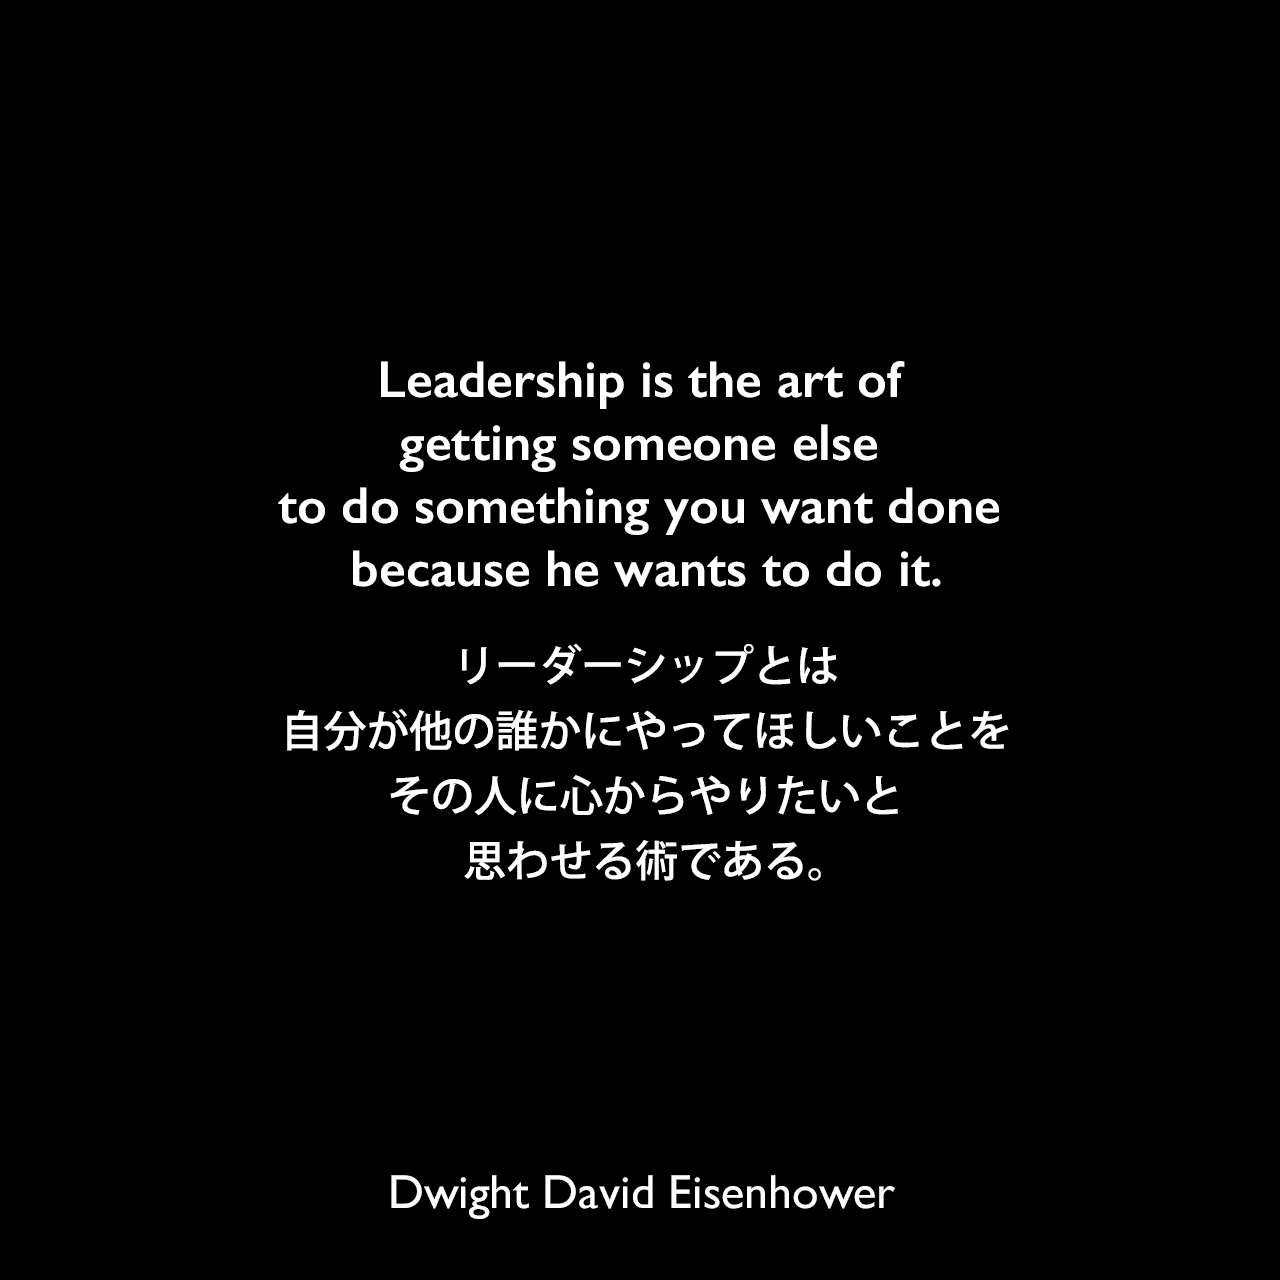 Leadership is the art of getting someone else to do something you want done because he wants to do it.リーダーシップとは、自分が他の誰かにやってほしいことを、その人に心からやりたいと思わせる術である。Dwight David Eisenhower